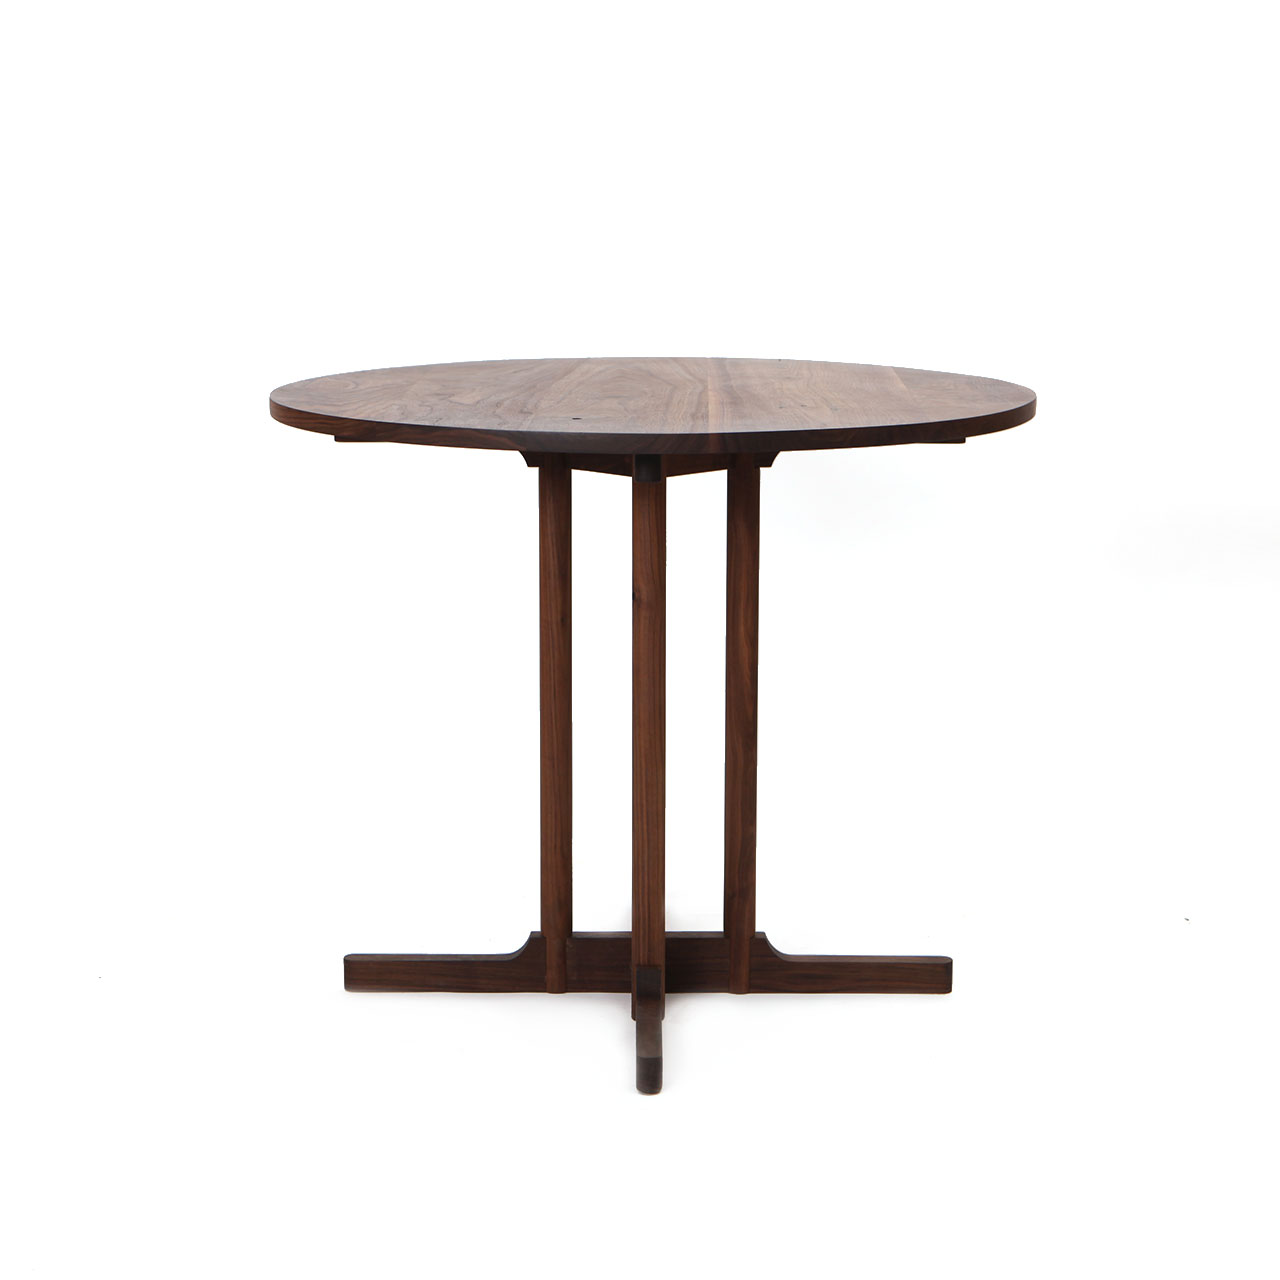 LOGGIA/Circle table